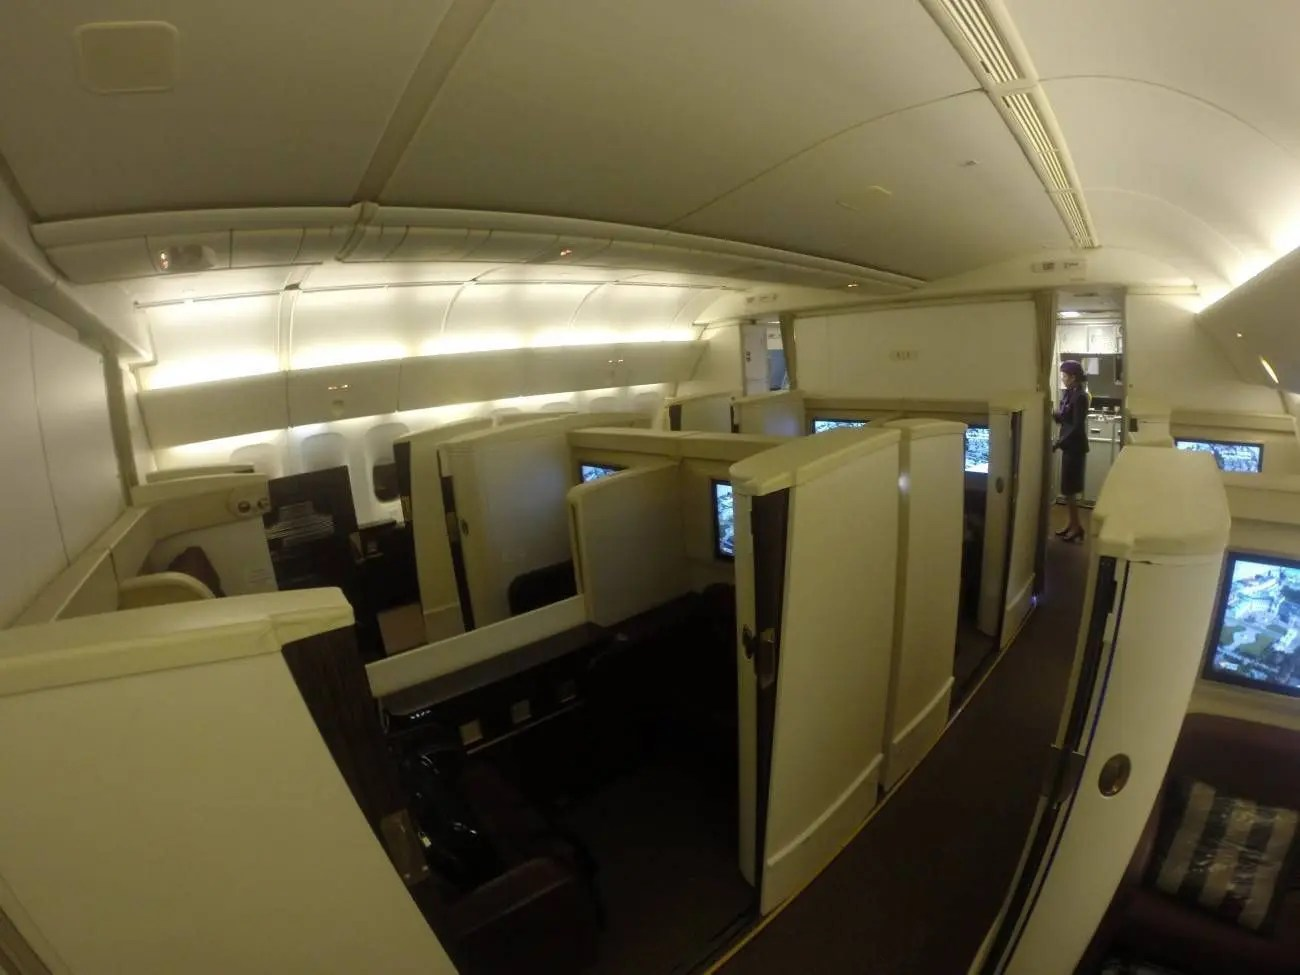 Jet-Airways-B777-First-Class-Etihad-Passageiro-de-Primeira-24-1300x975